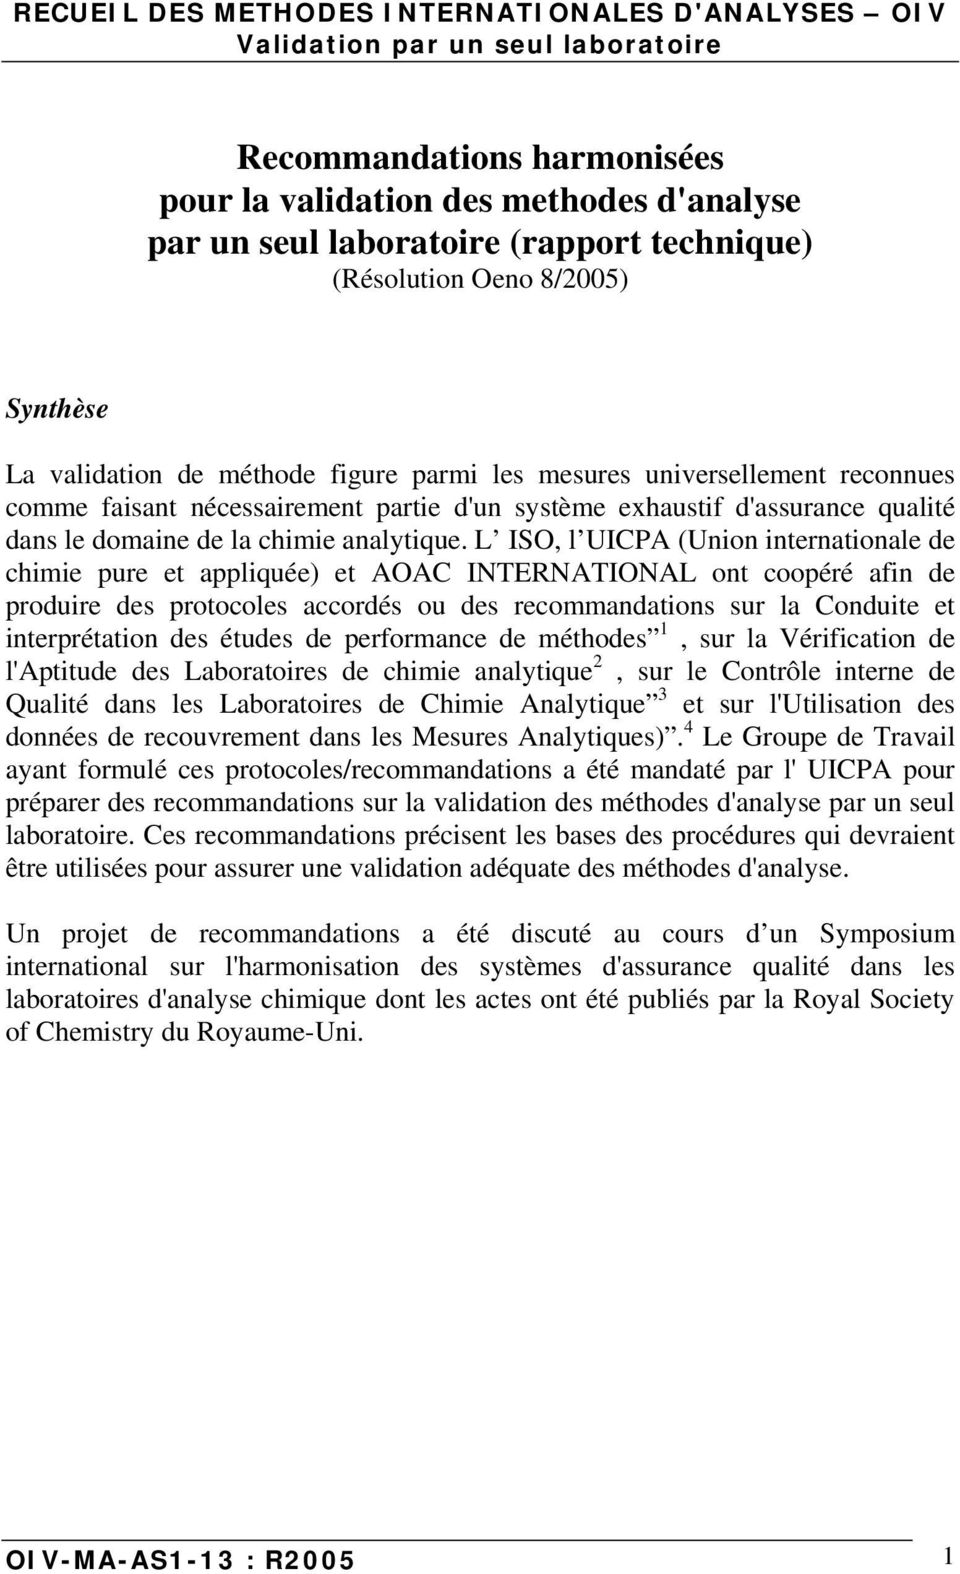 L ISO, l UICPA (Union internationale de chimie pure et appliquée) et AOAC INTERNATIONAL ont coopéré afin de produire des protocoles accordés ou des recommandations sur la Conduite et interprétation